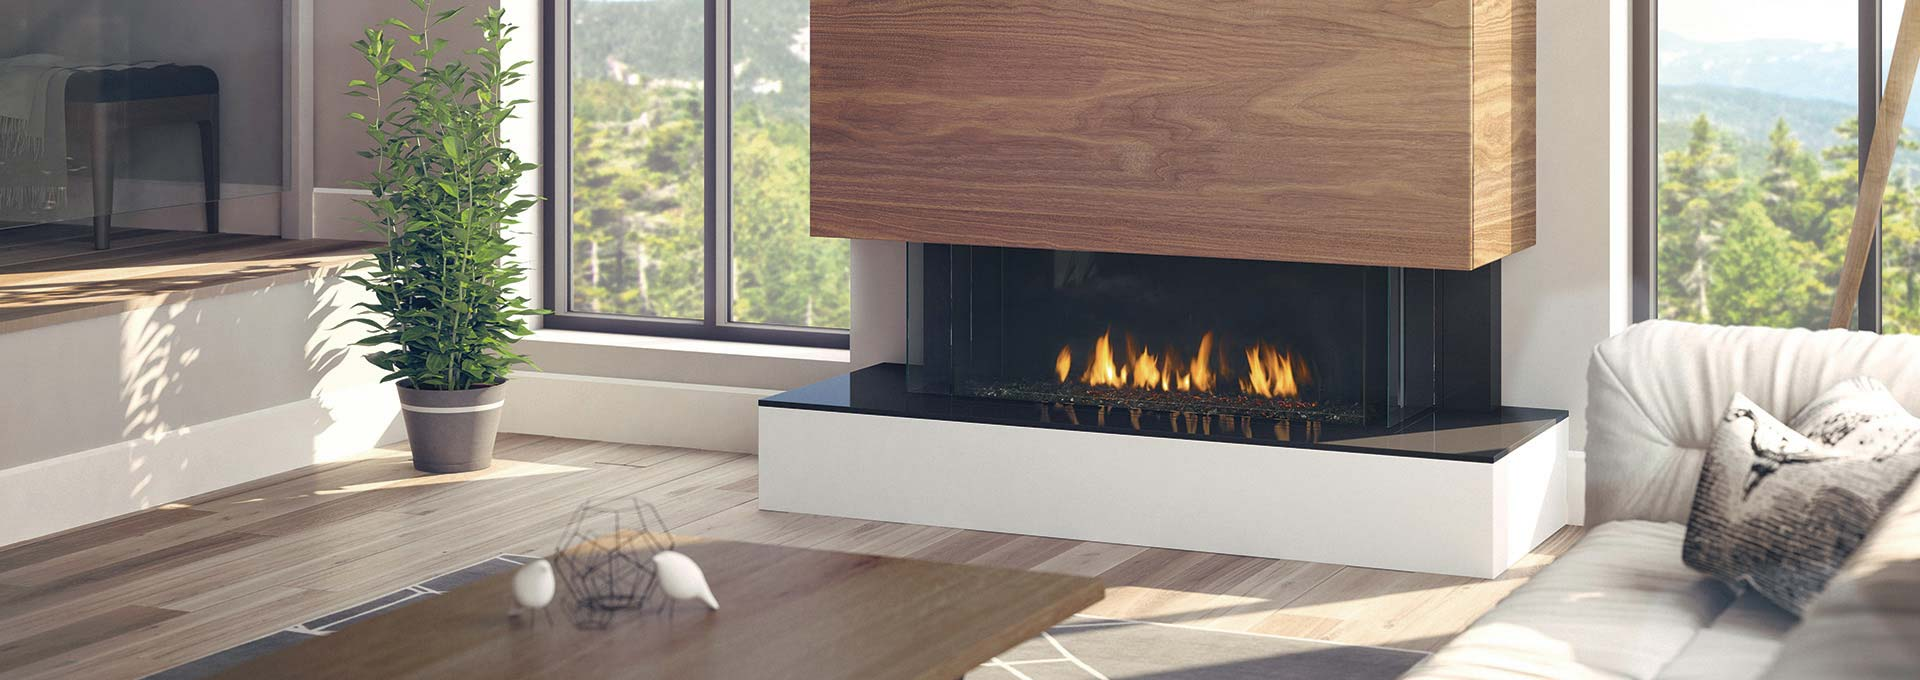 ideas designer open modern modus fireplaces fireplace best contemporary slate wood